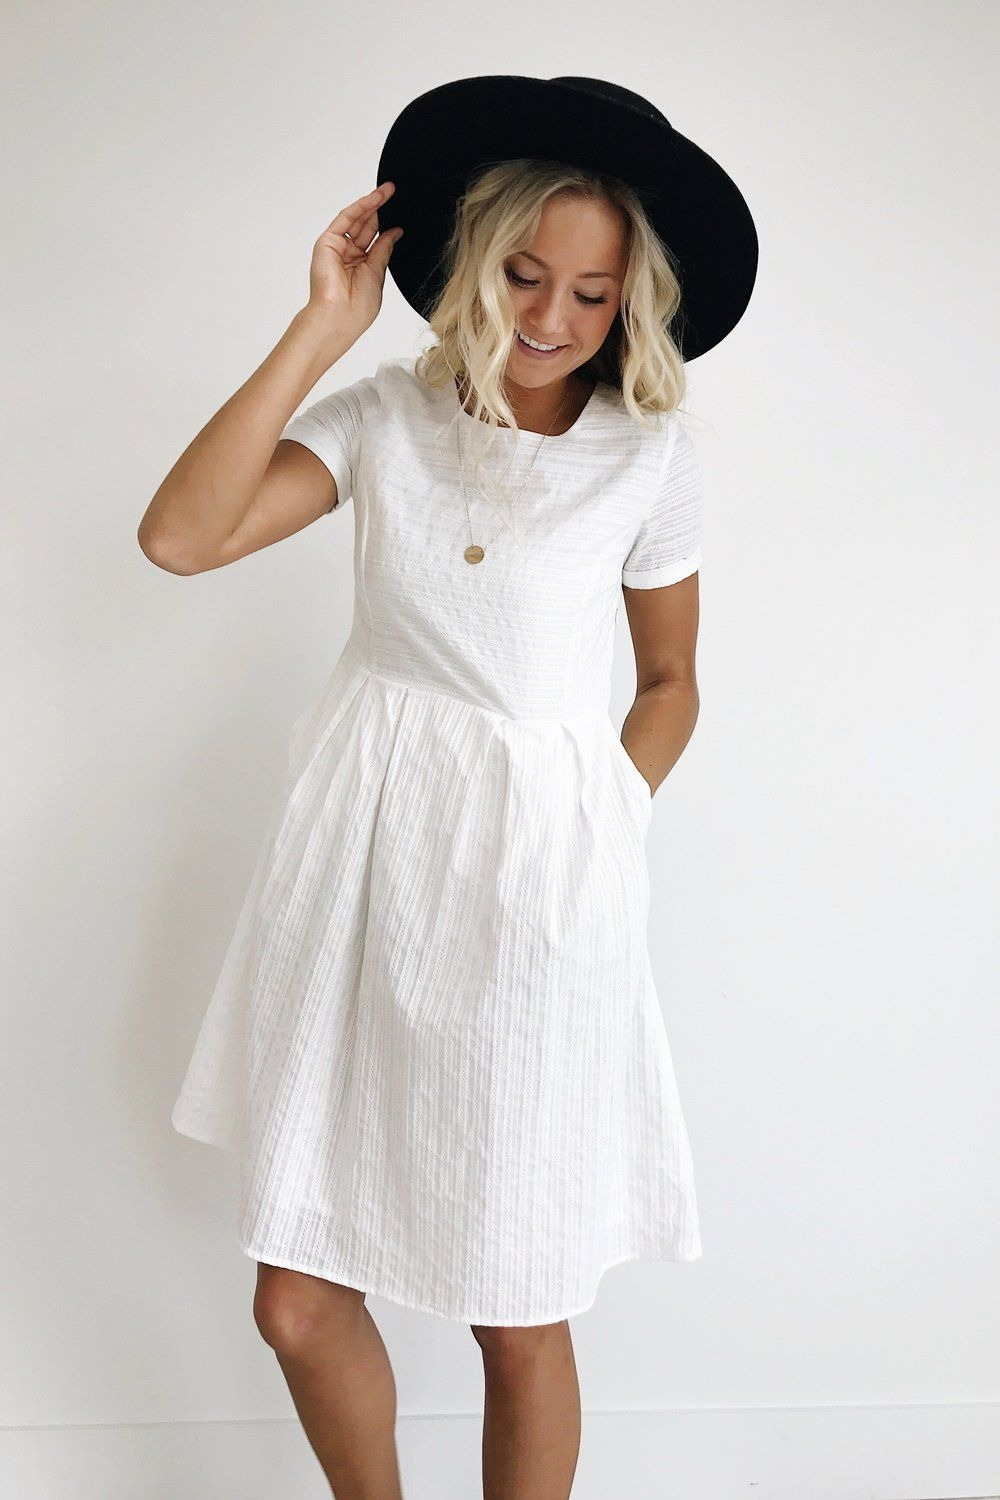 d97a1c6b781e White Cotton A-Line Dress Striped Eyelet Detailing Fitted Bodice + Cuffed  Short Sleeves Pleated Skirt w/Hidden Pockets Also Available in Rose